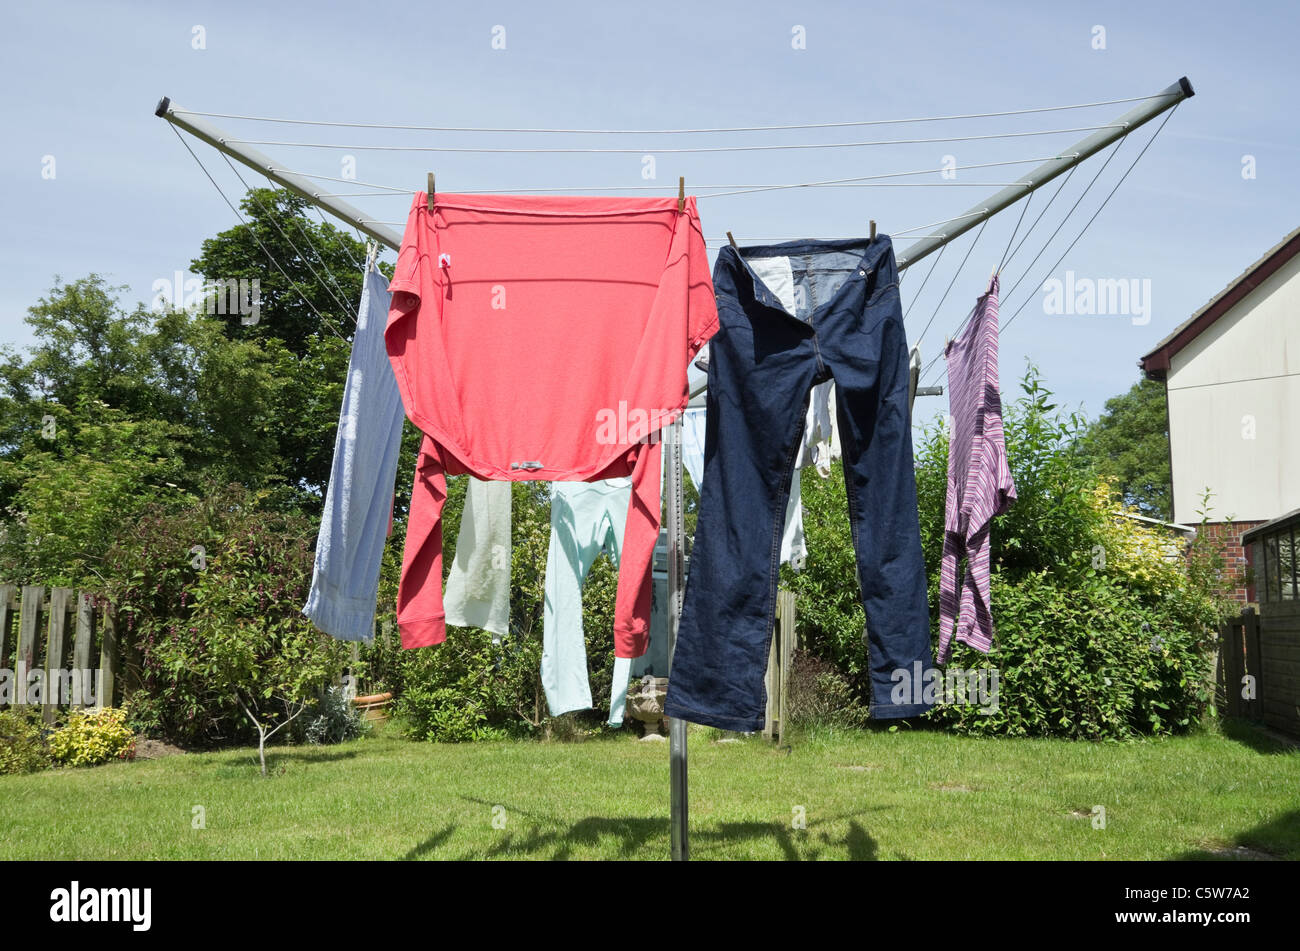 Wet clothes hanging out on a rotary washing line to dry